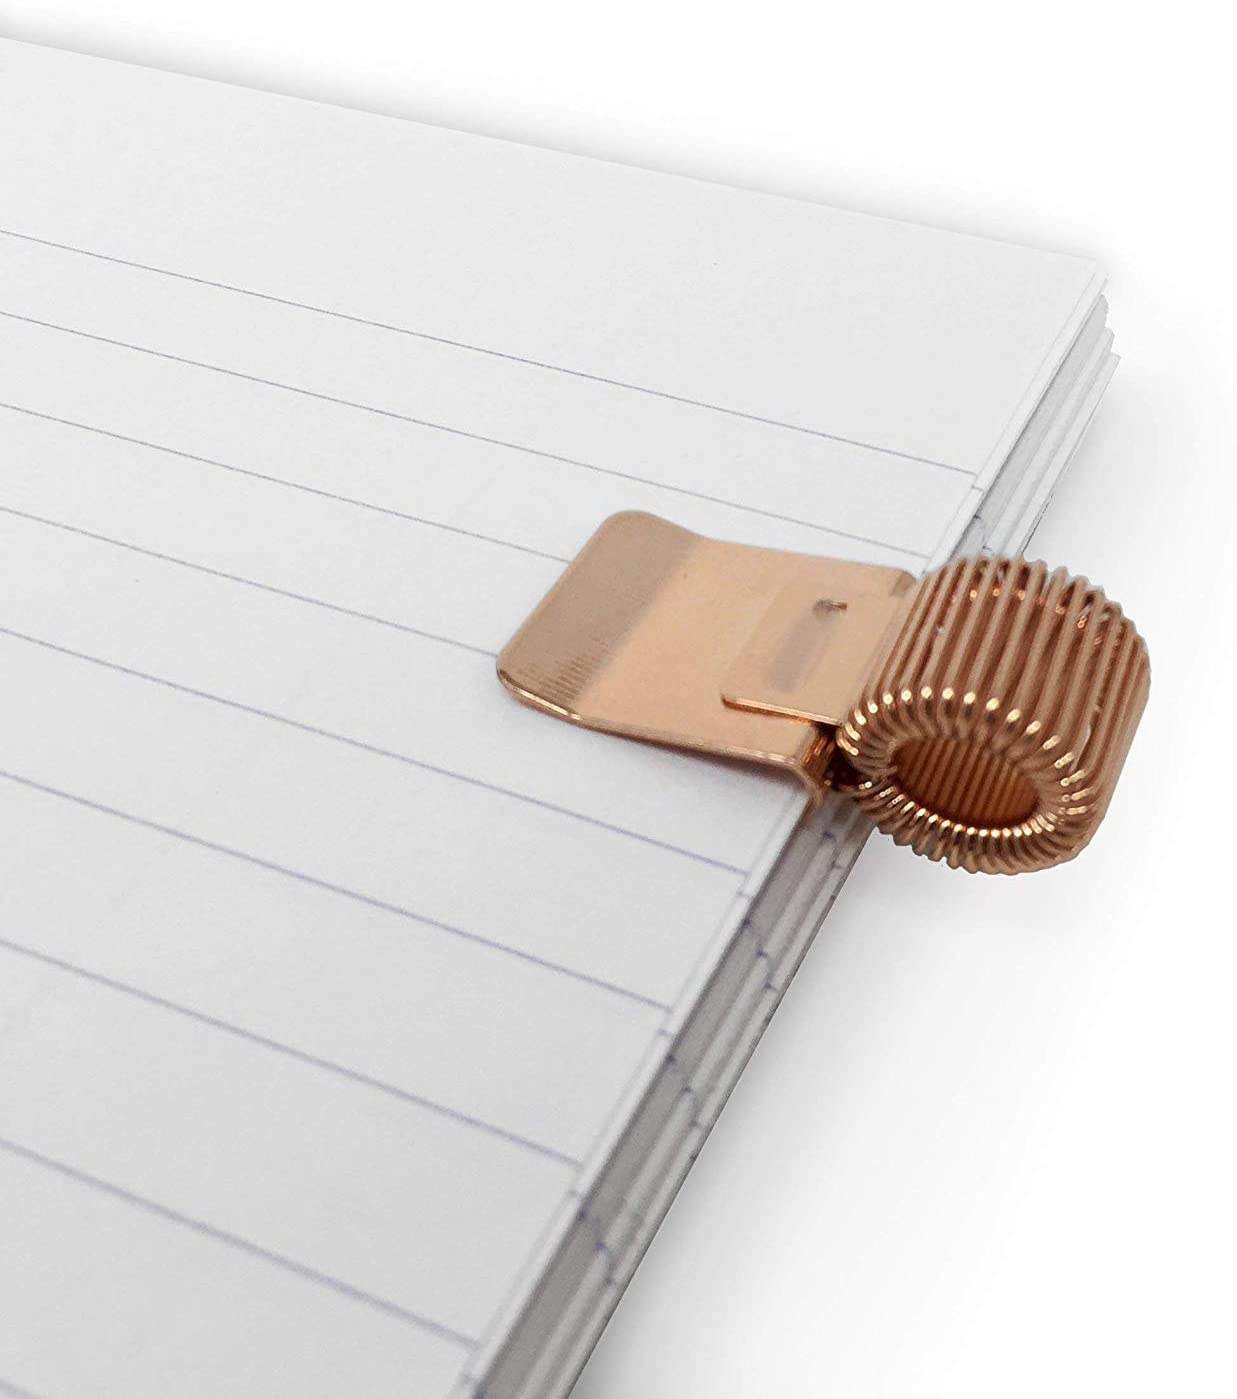 Ideal For Doctors//Nurses//Foreman//Office Metal Pen Clip Holder for Notebook//Clipboard//Journal//Diary Rose Gold Pack of 3